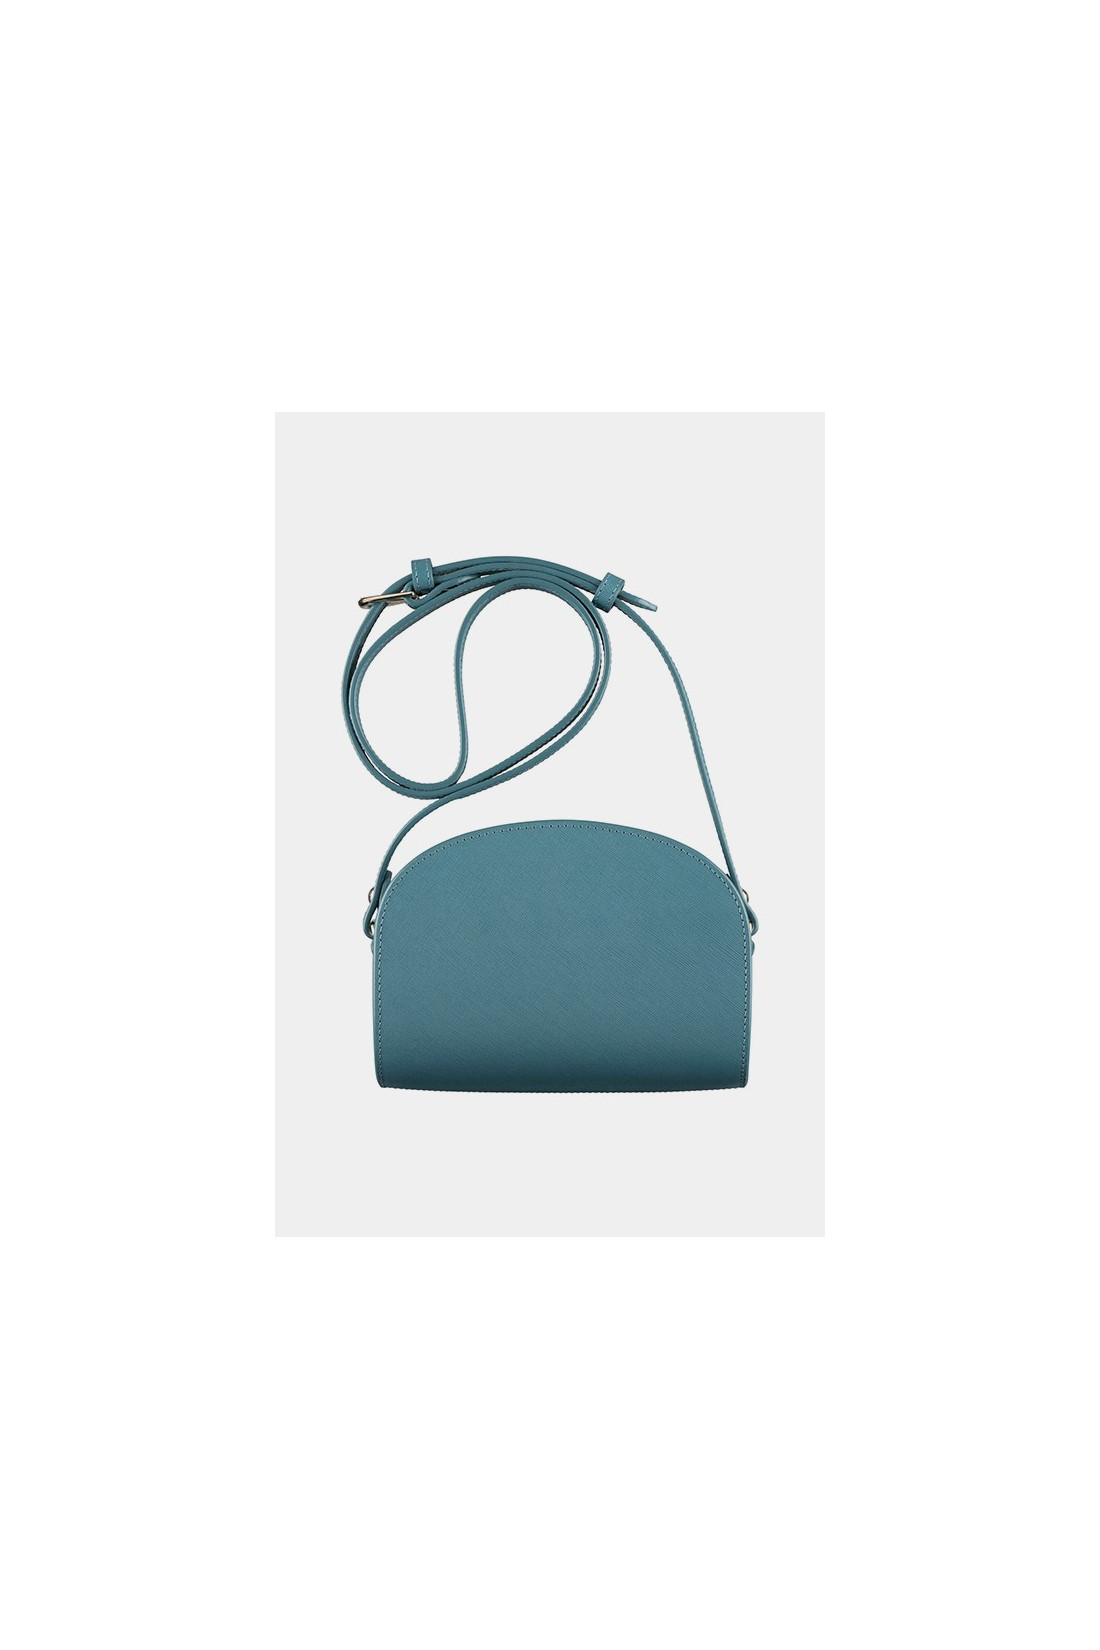 A.P.C. FOR WOMAN / Sac demi-lune embosse Bleu canard